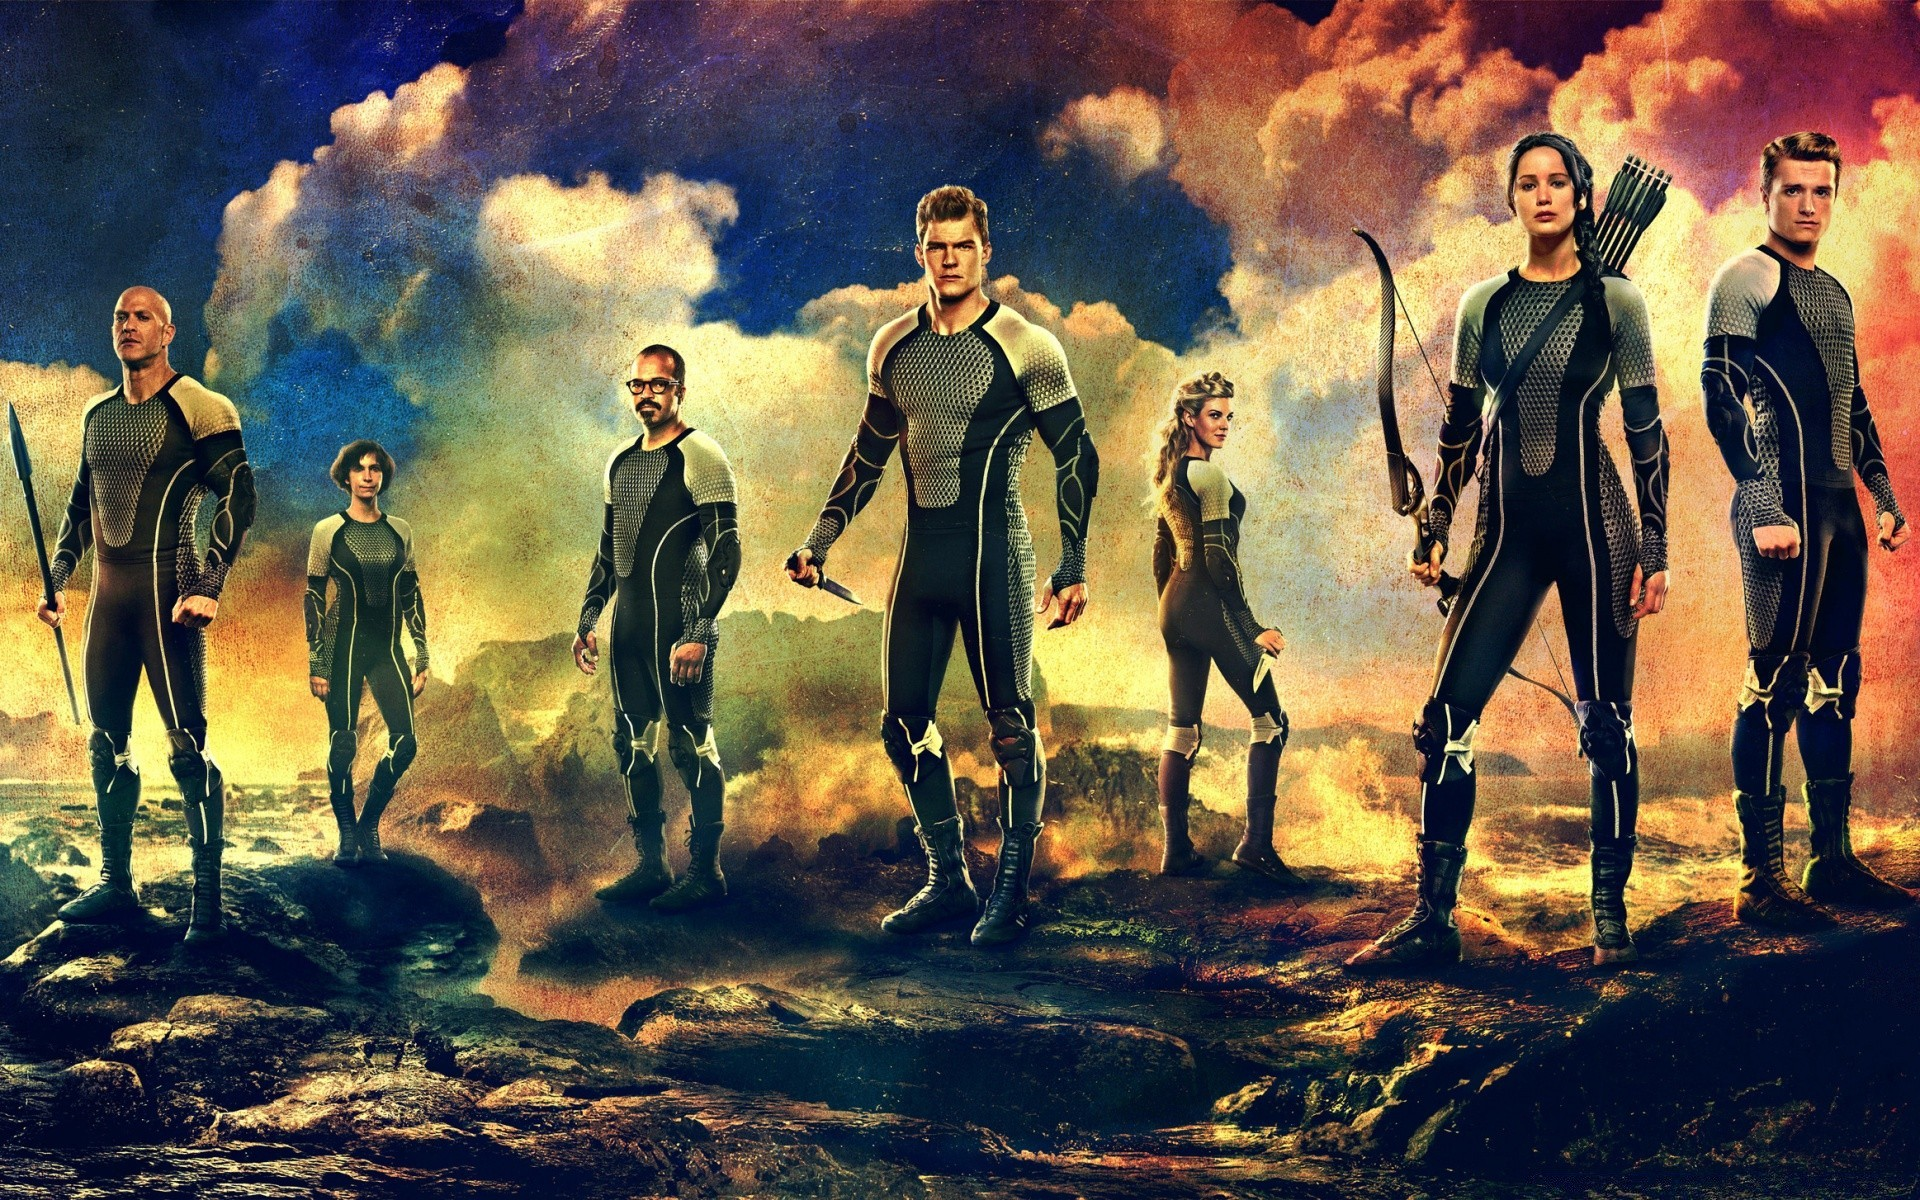 The Hunger Games Catching Fire Cast Android Wallpapers For Free